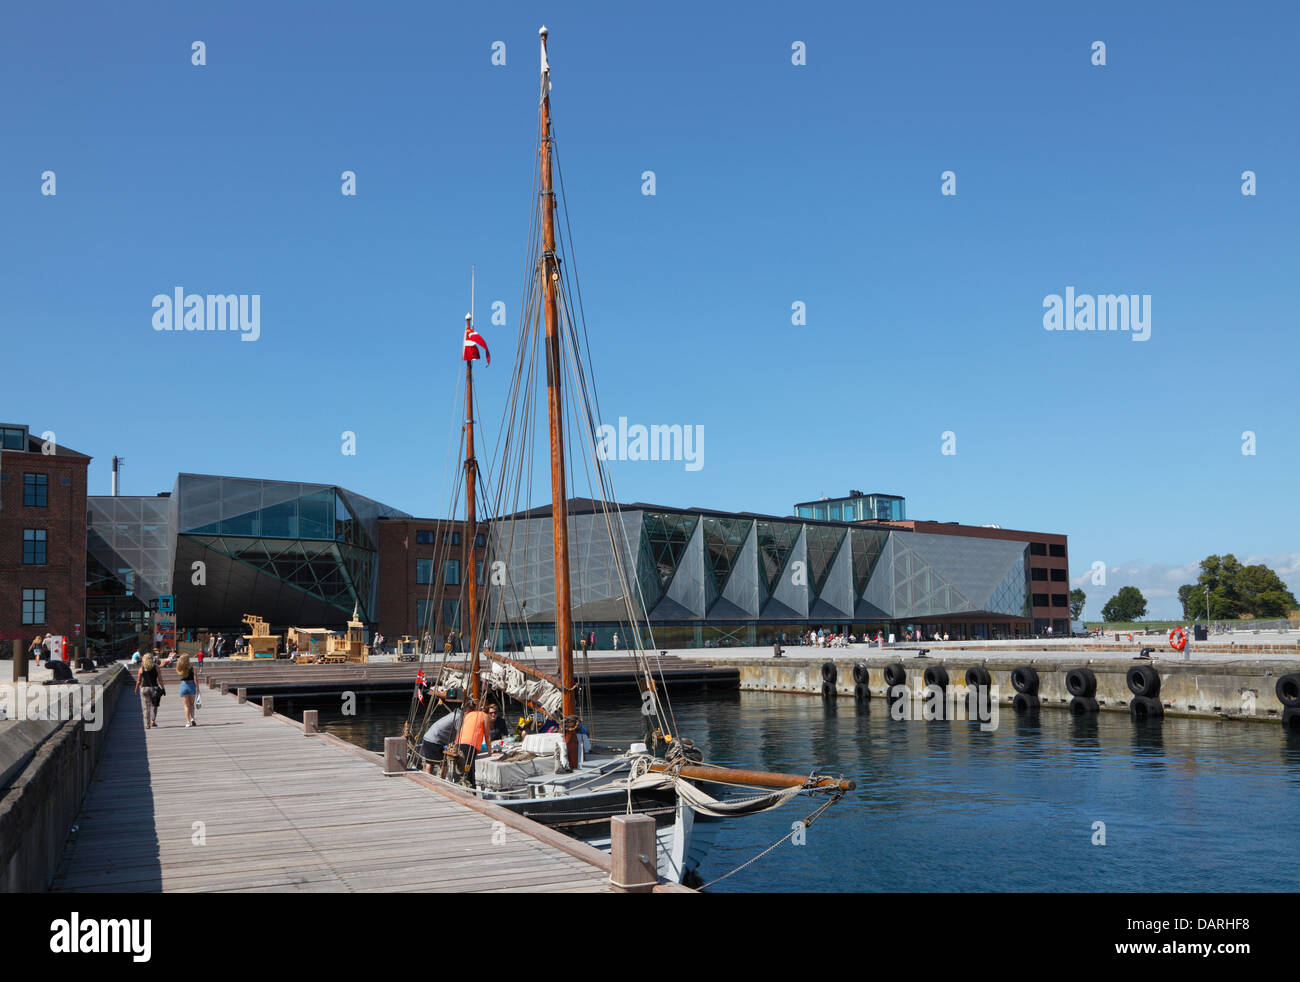 Old sailing ship in front of The Culture Yard on the waterfront in the harbour of Elsinore, Helsingør, Denmark. - Stock Image